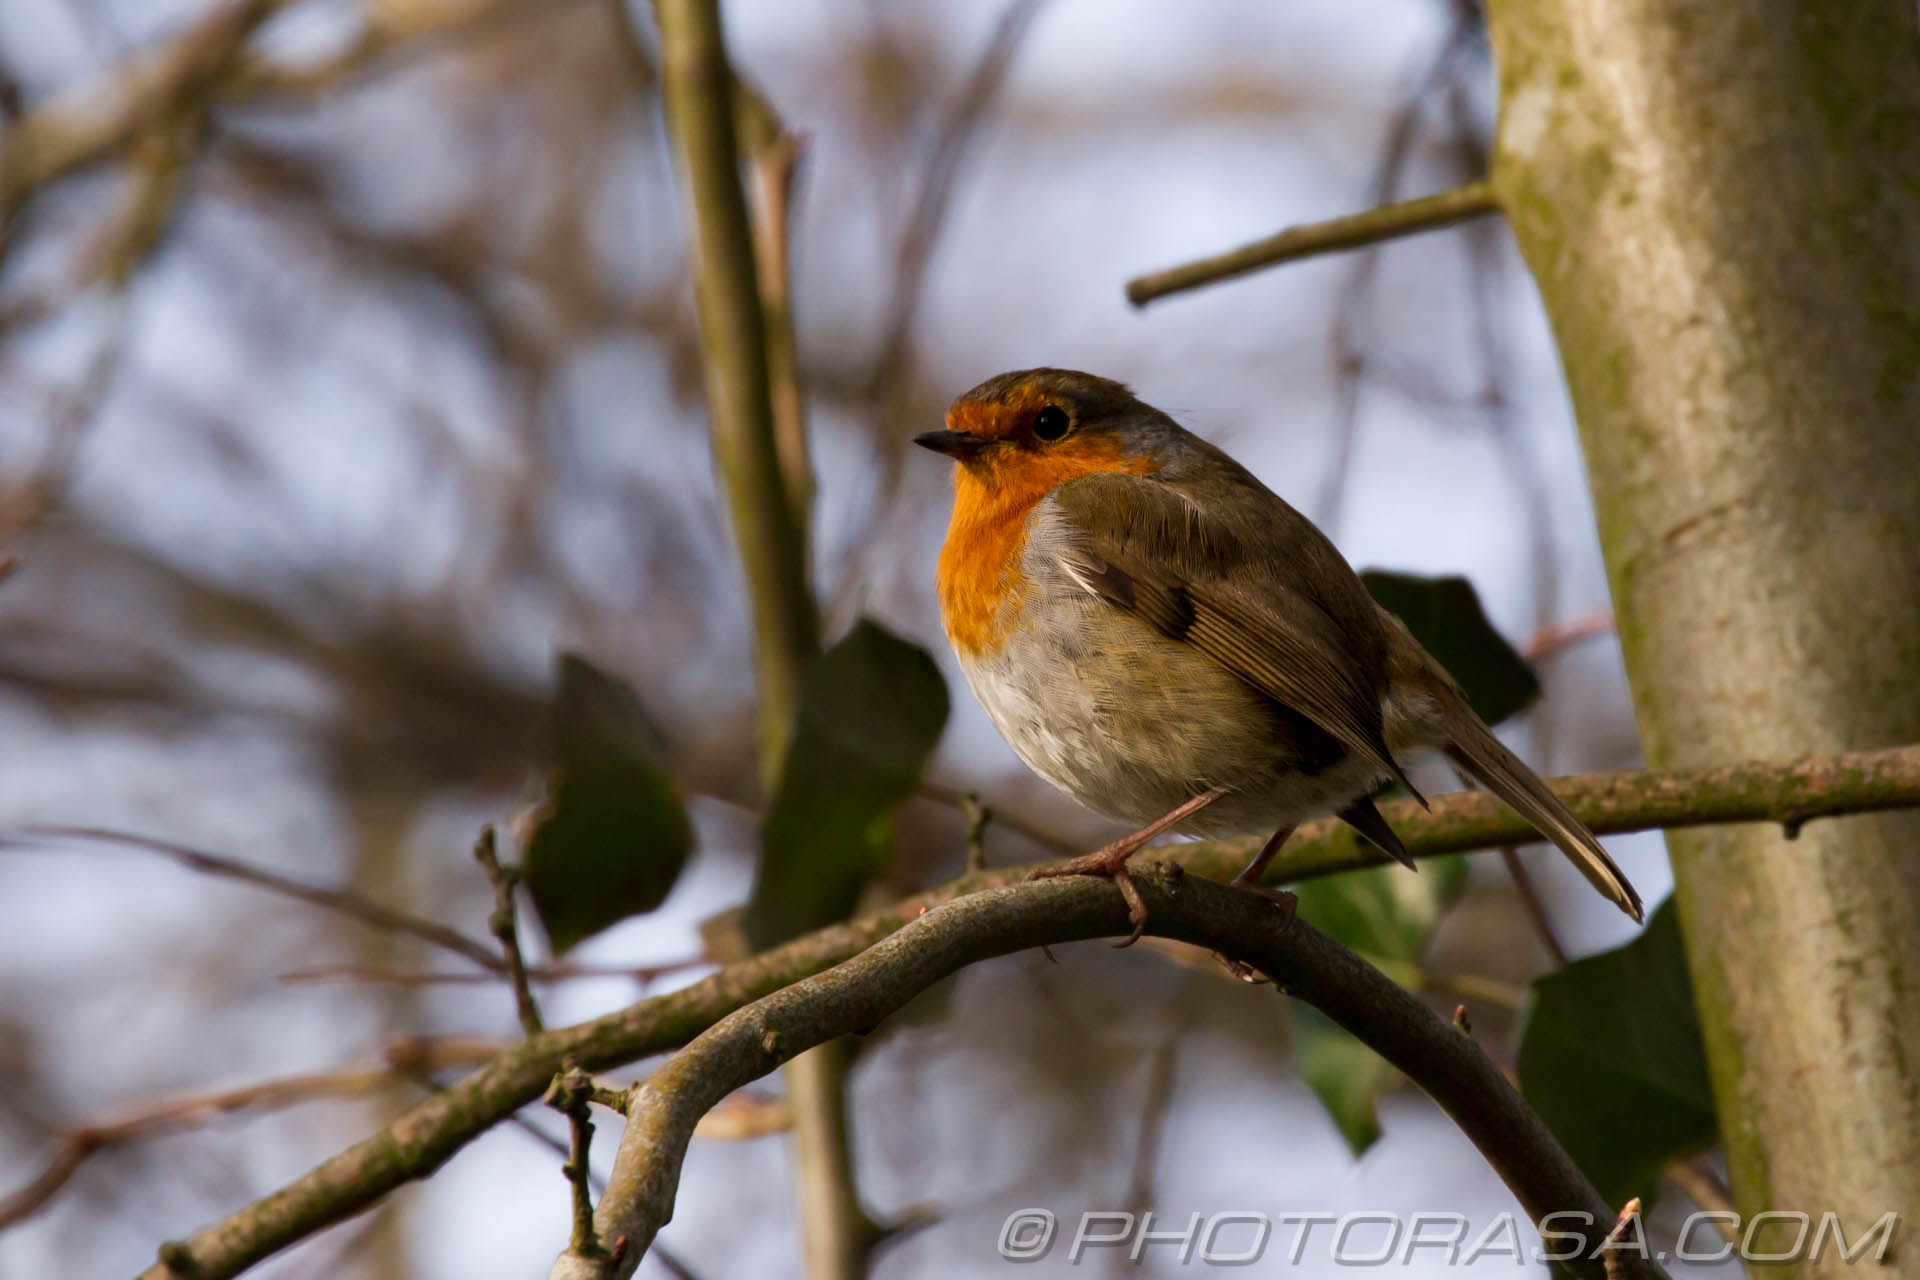 http://photorasa.com/robins/puffed-robin-on-a-branch/